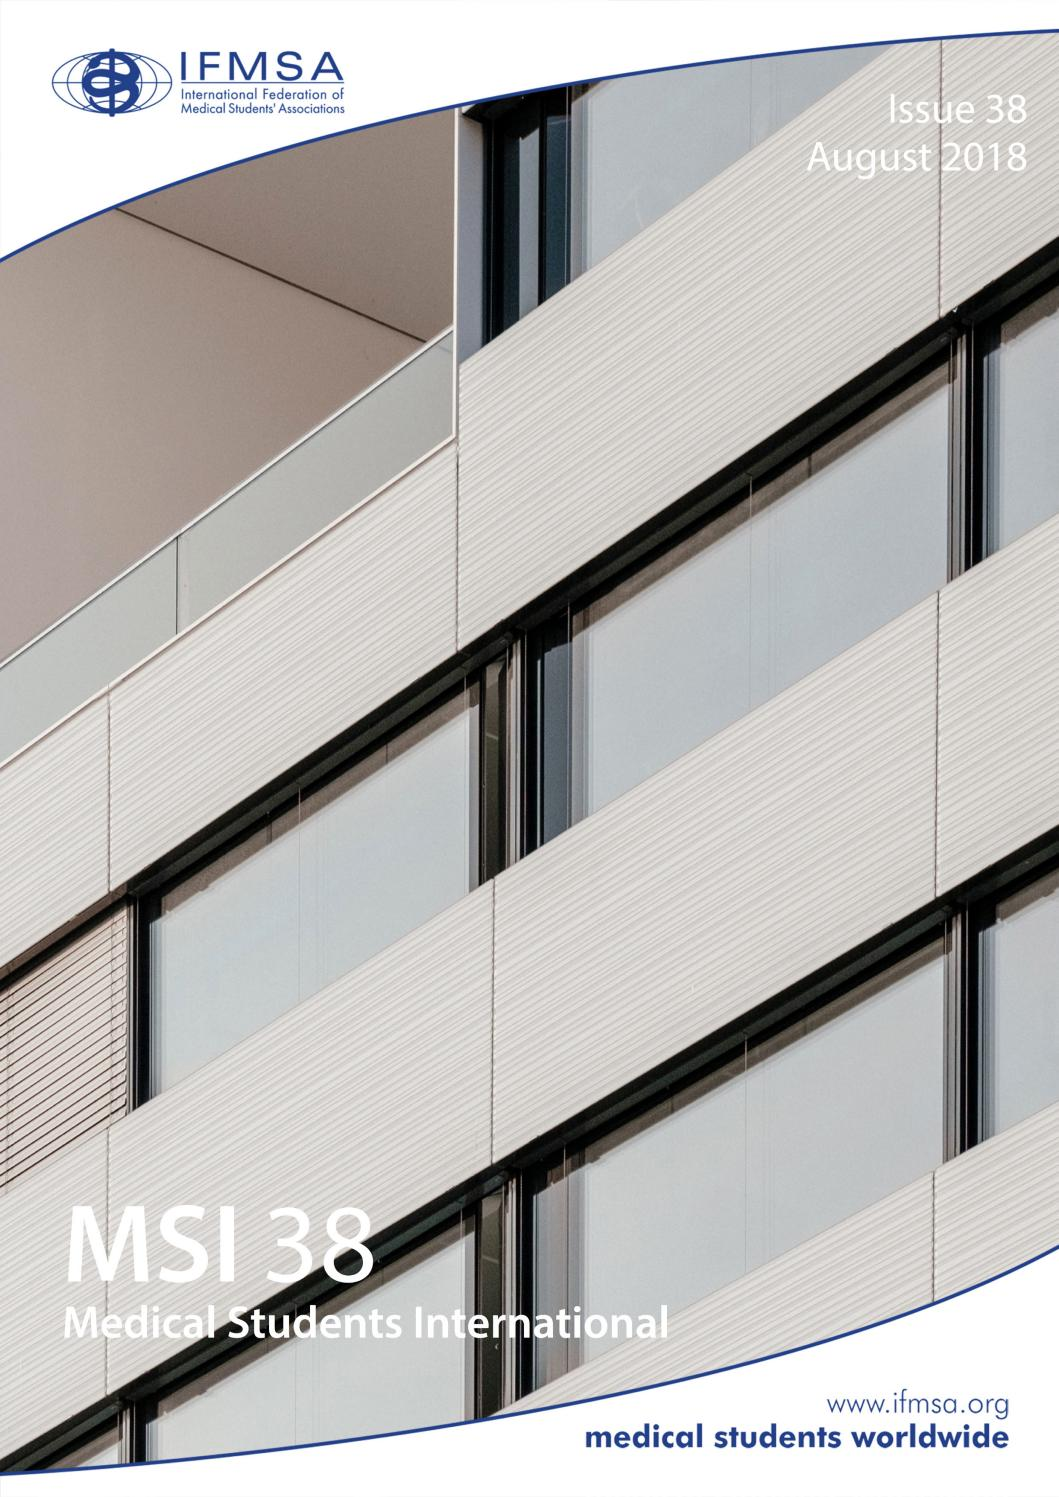 Msi 38 by international federation of medical students associations issuu